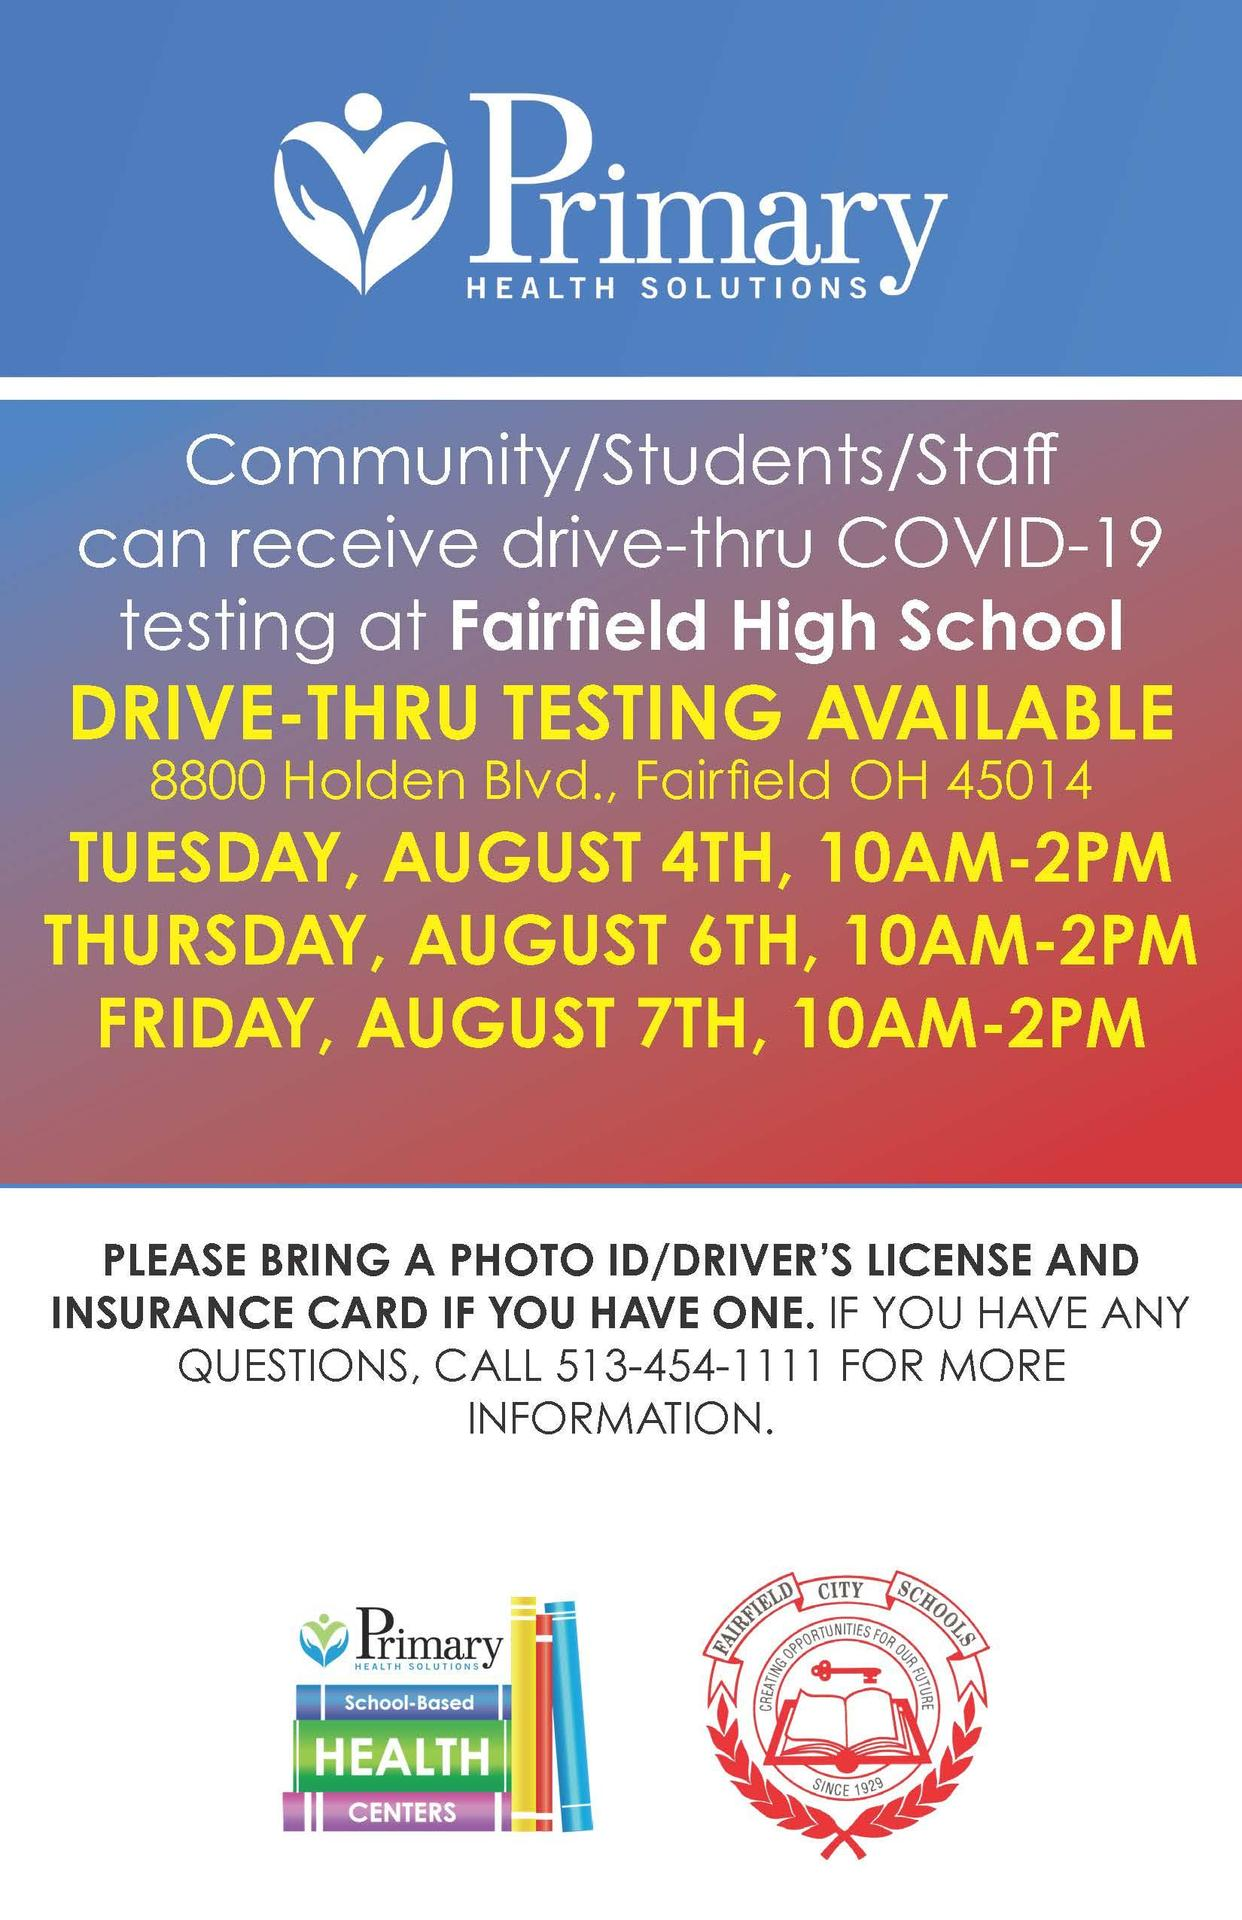 Image of a flyer announcing that Primary Health Solutions will provide free COVID-19 testing Aug. 4, 6 and 7 from 10-2 at FHS.